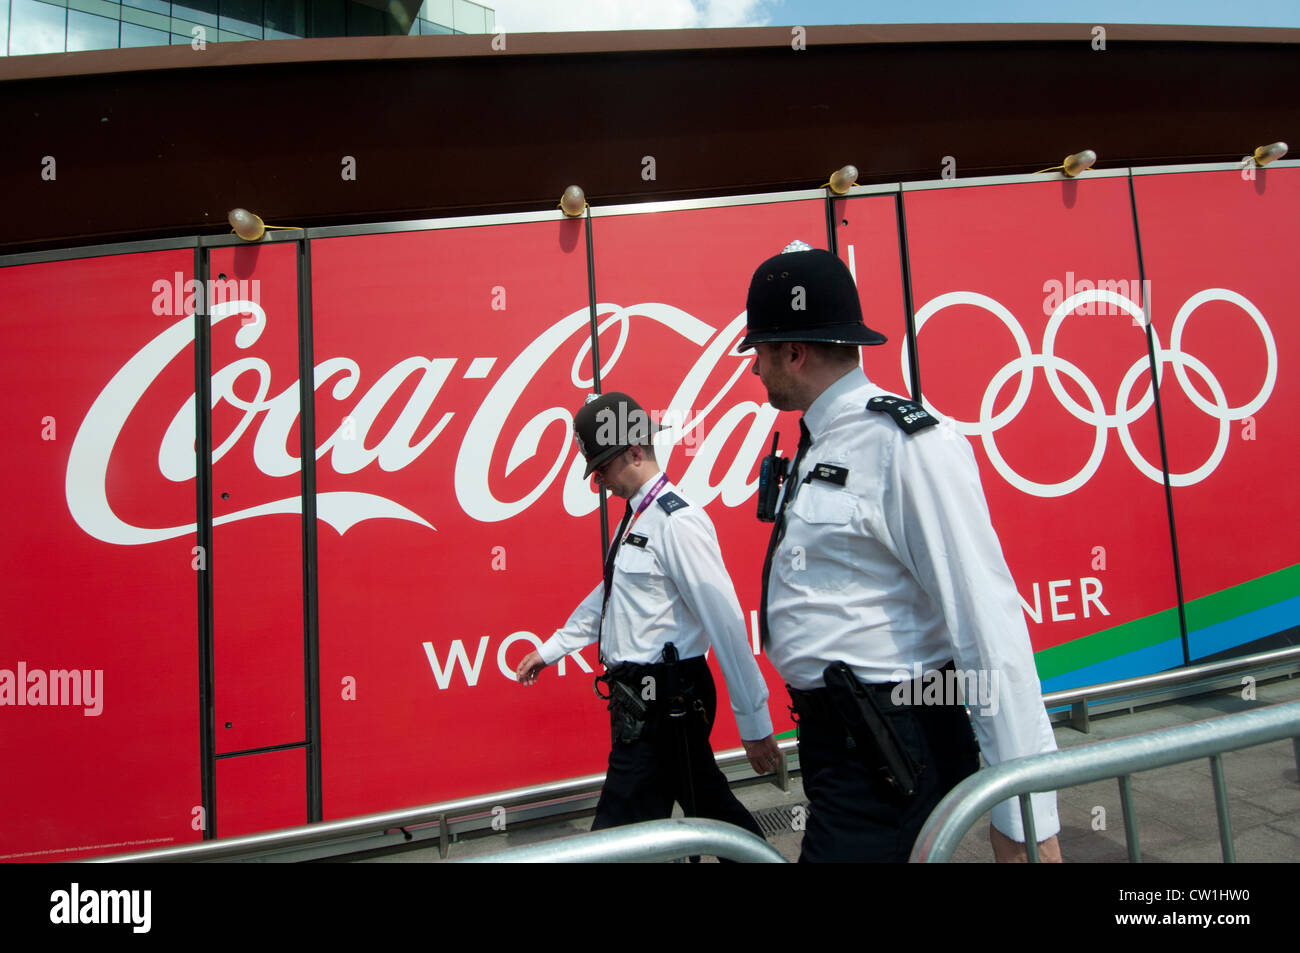 Westfield Shopping Centre, Stratford, entrance to the Olympic Park. Two policeman walk in front of an advert for Stock Photo